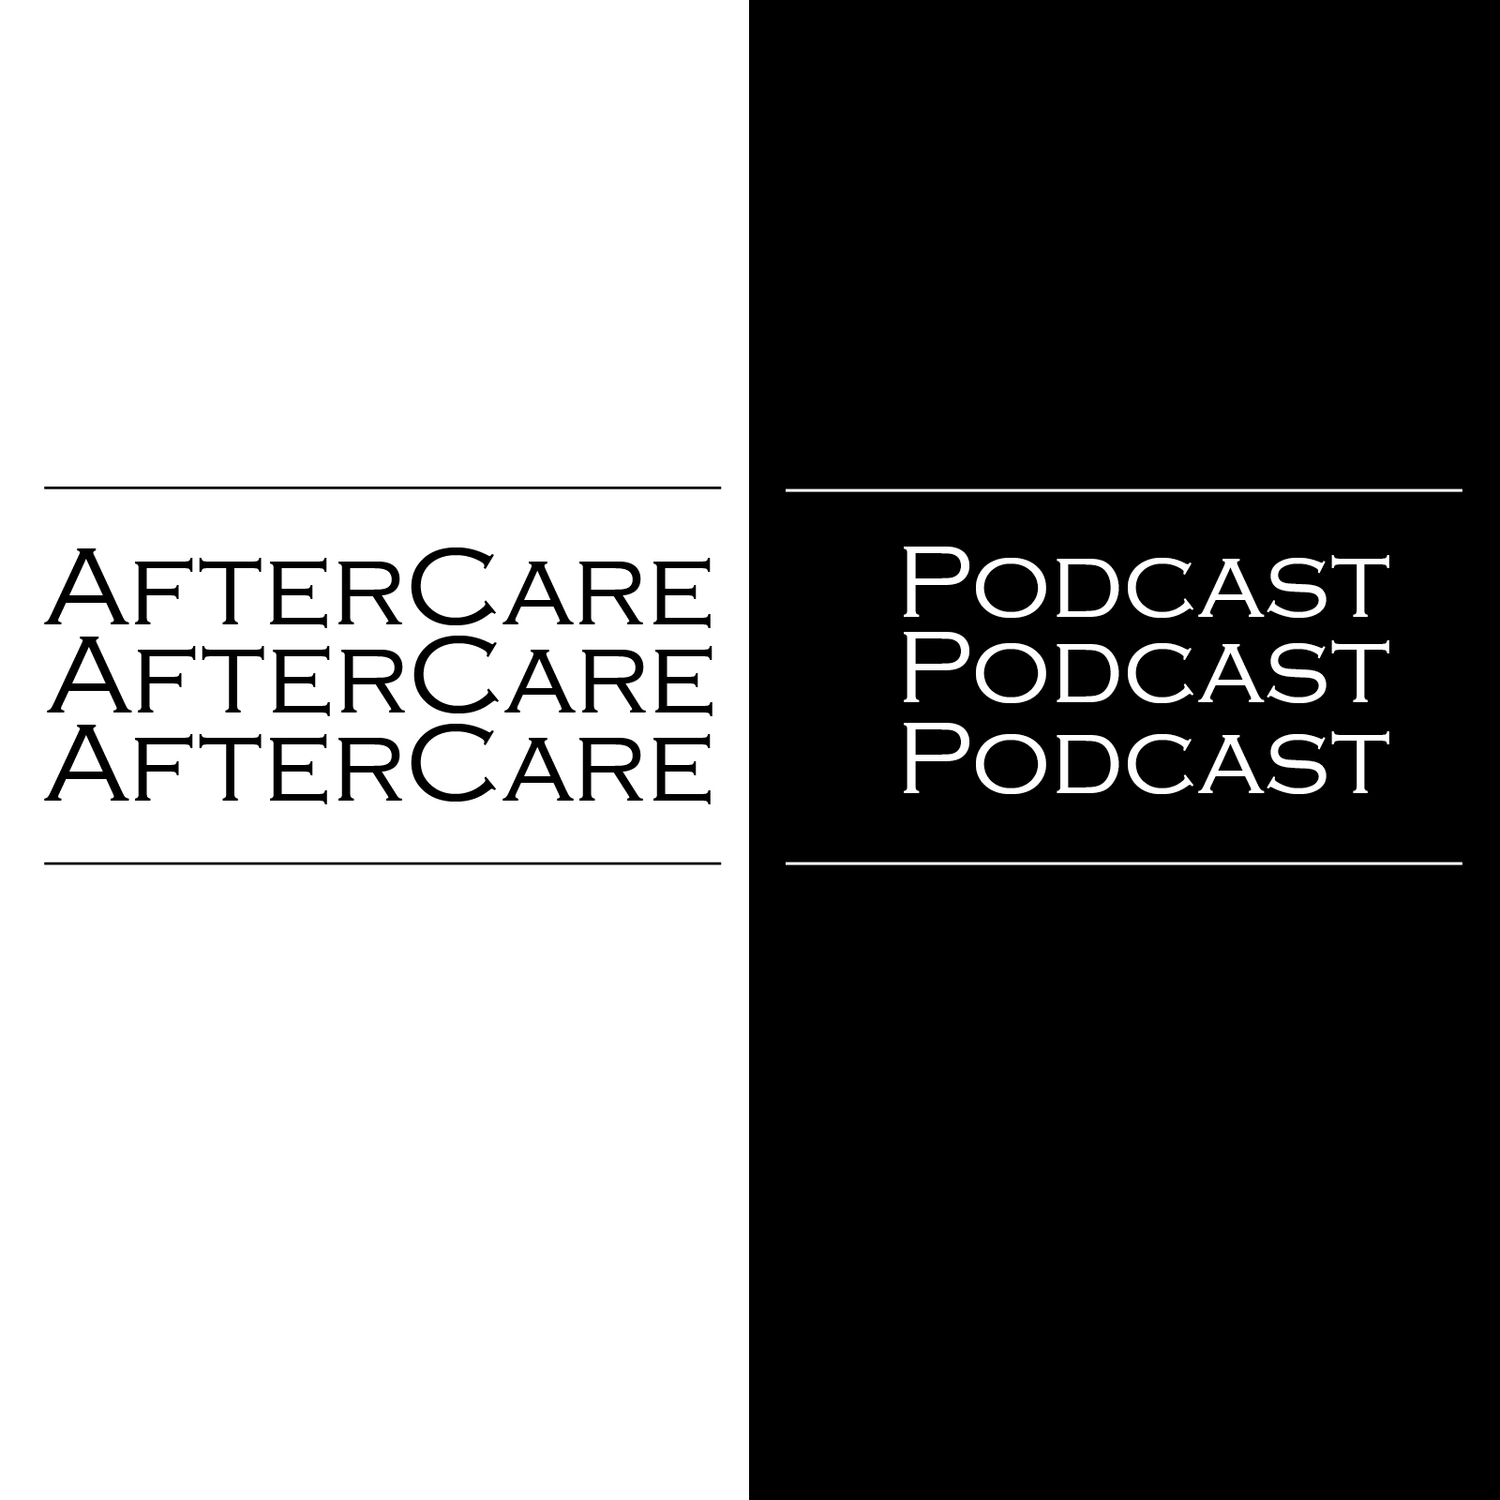 The AfterCare Podcast